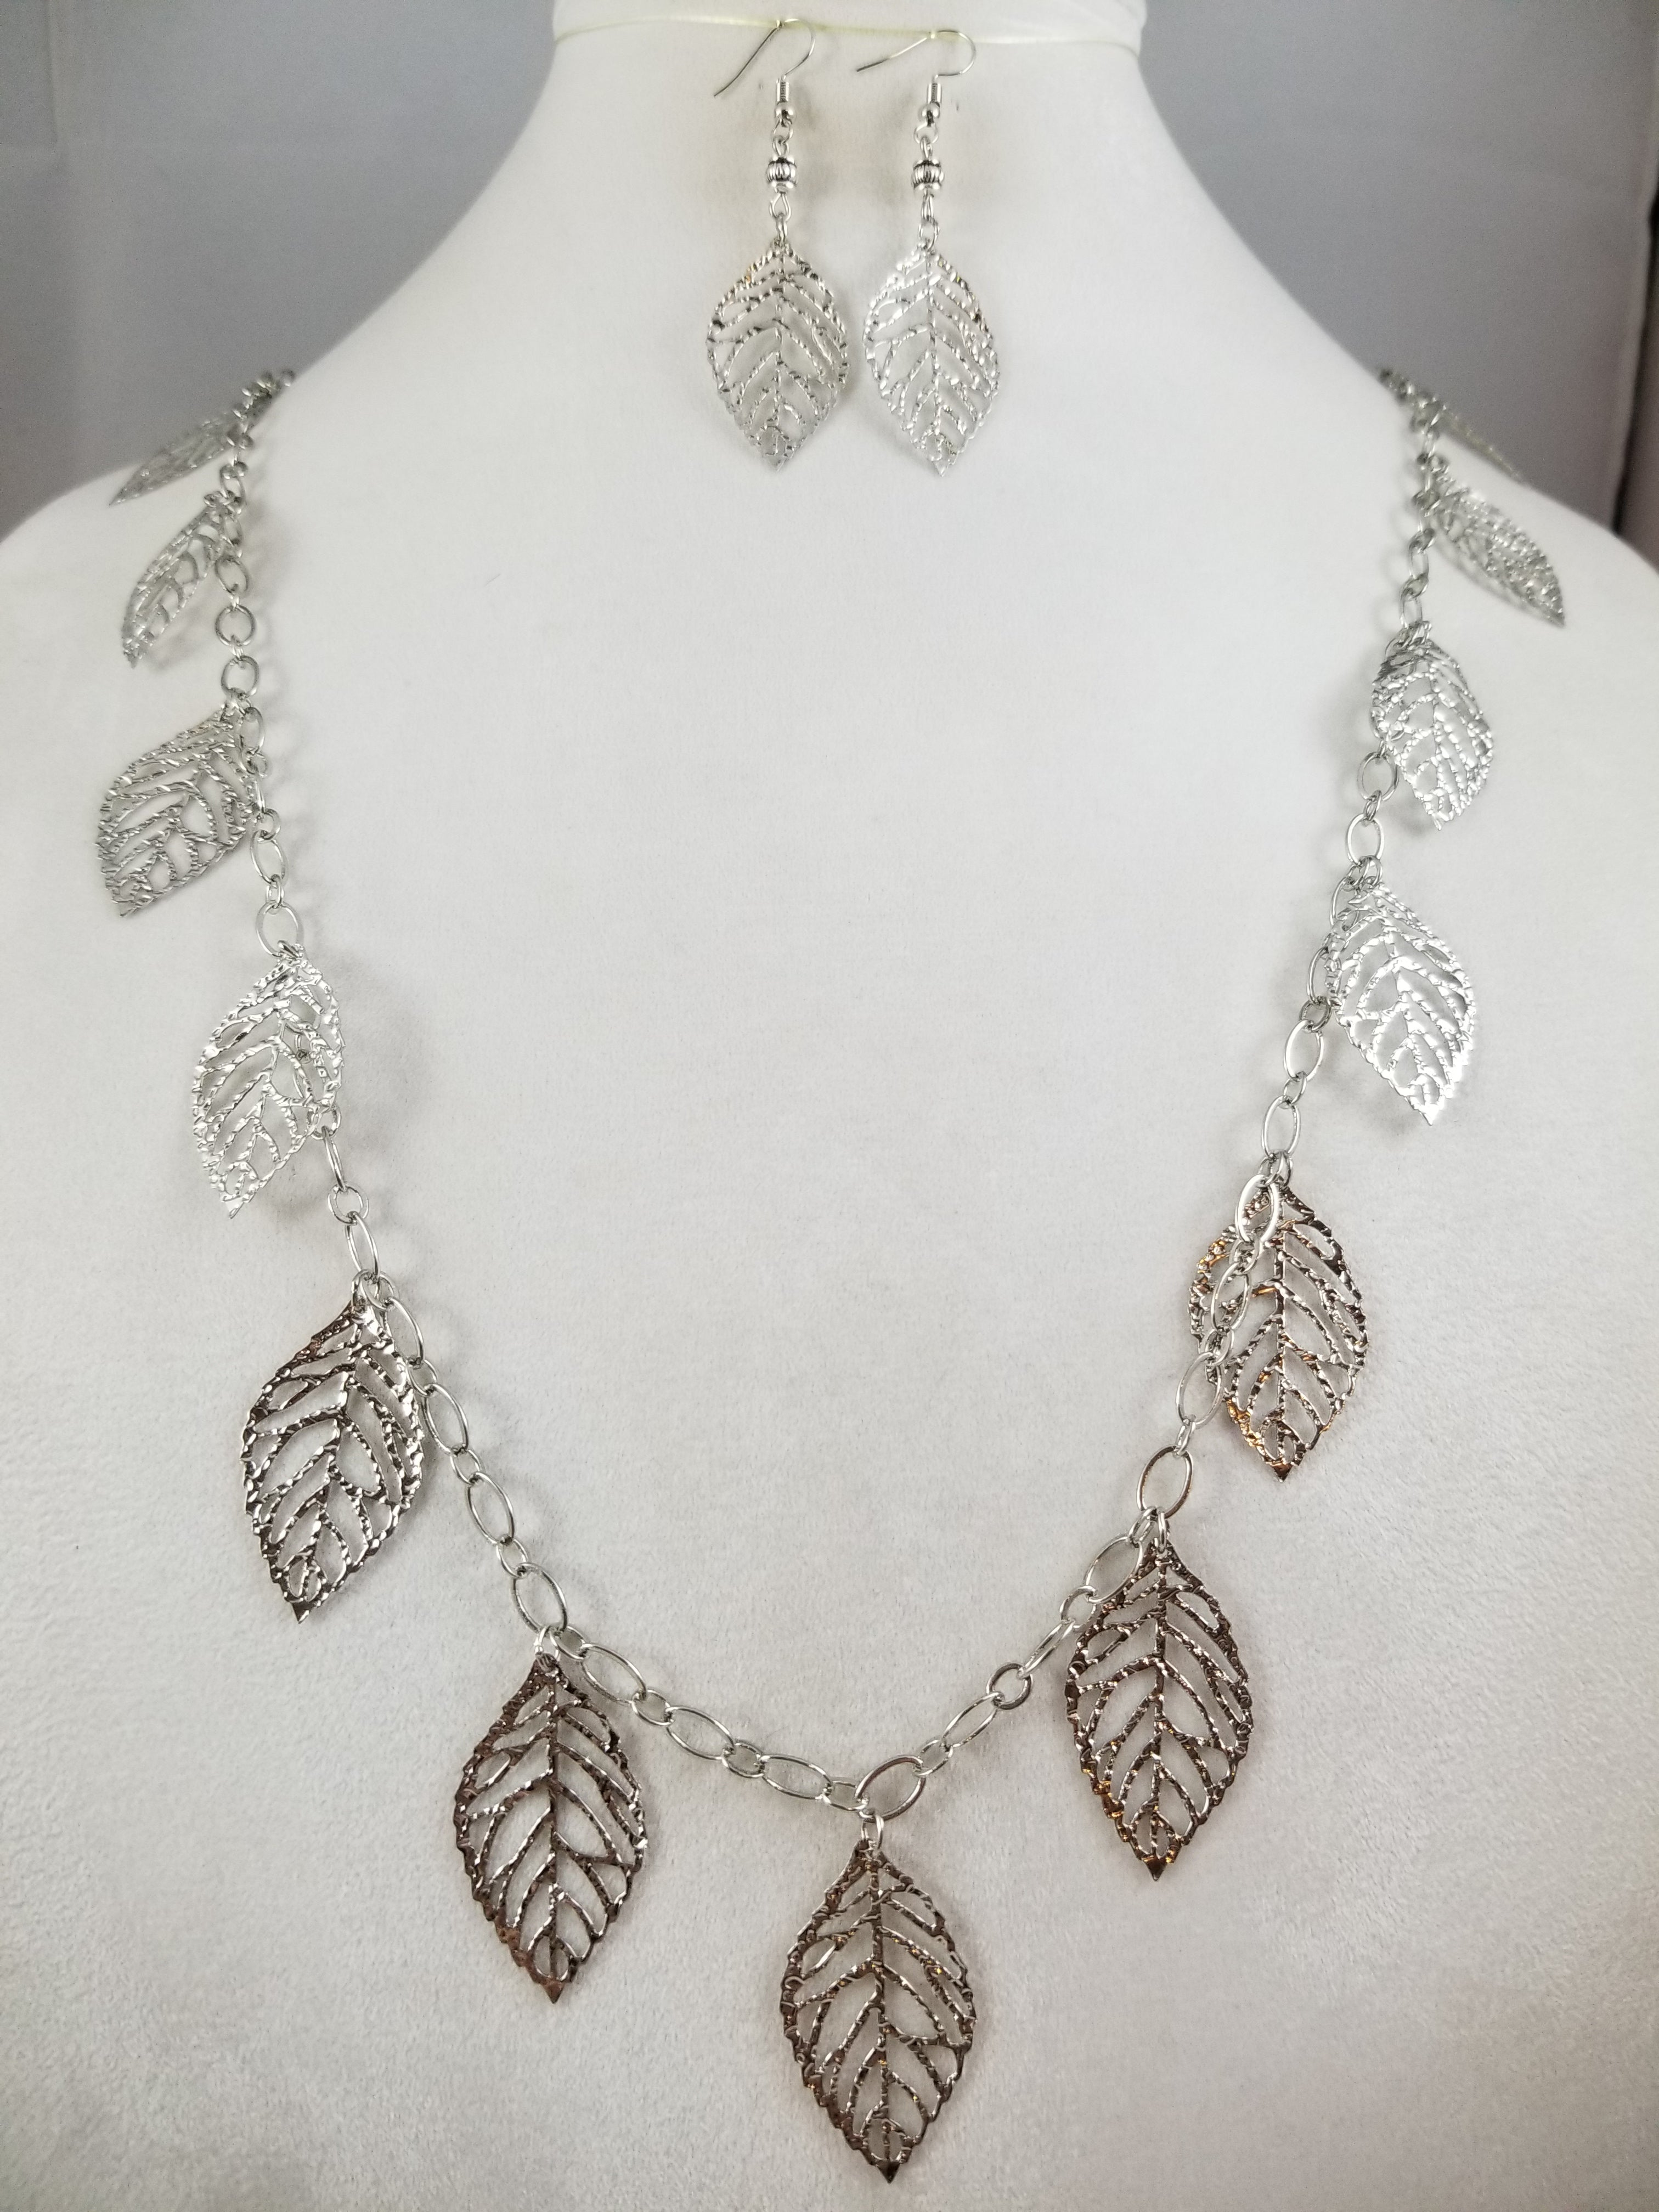 Silvery Leaf Necklace with Earrings